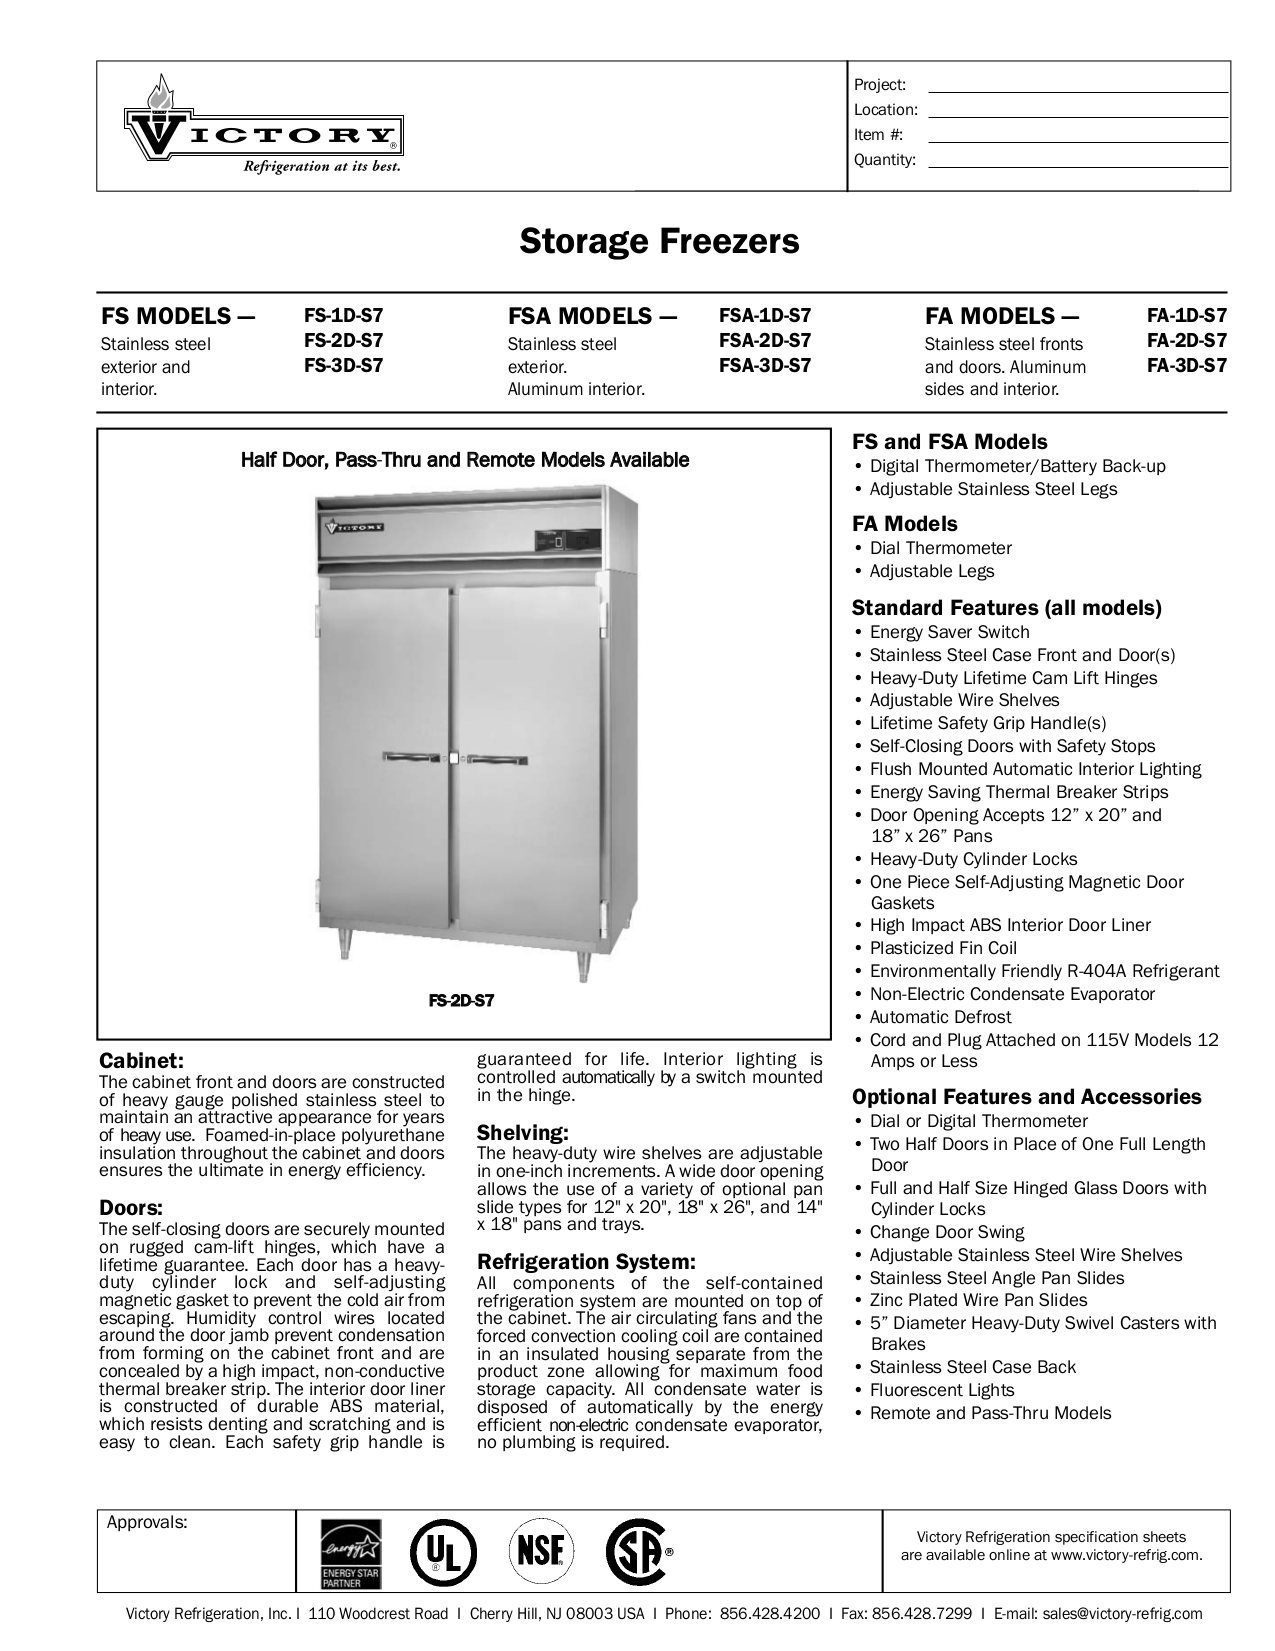 pdf for Victory Freezer FA-1D-S7 manual